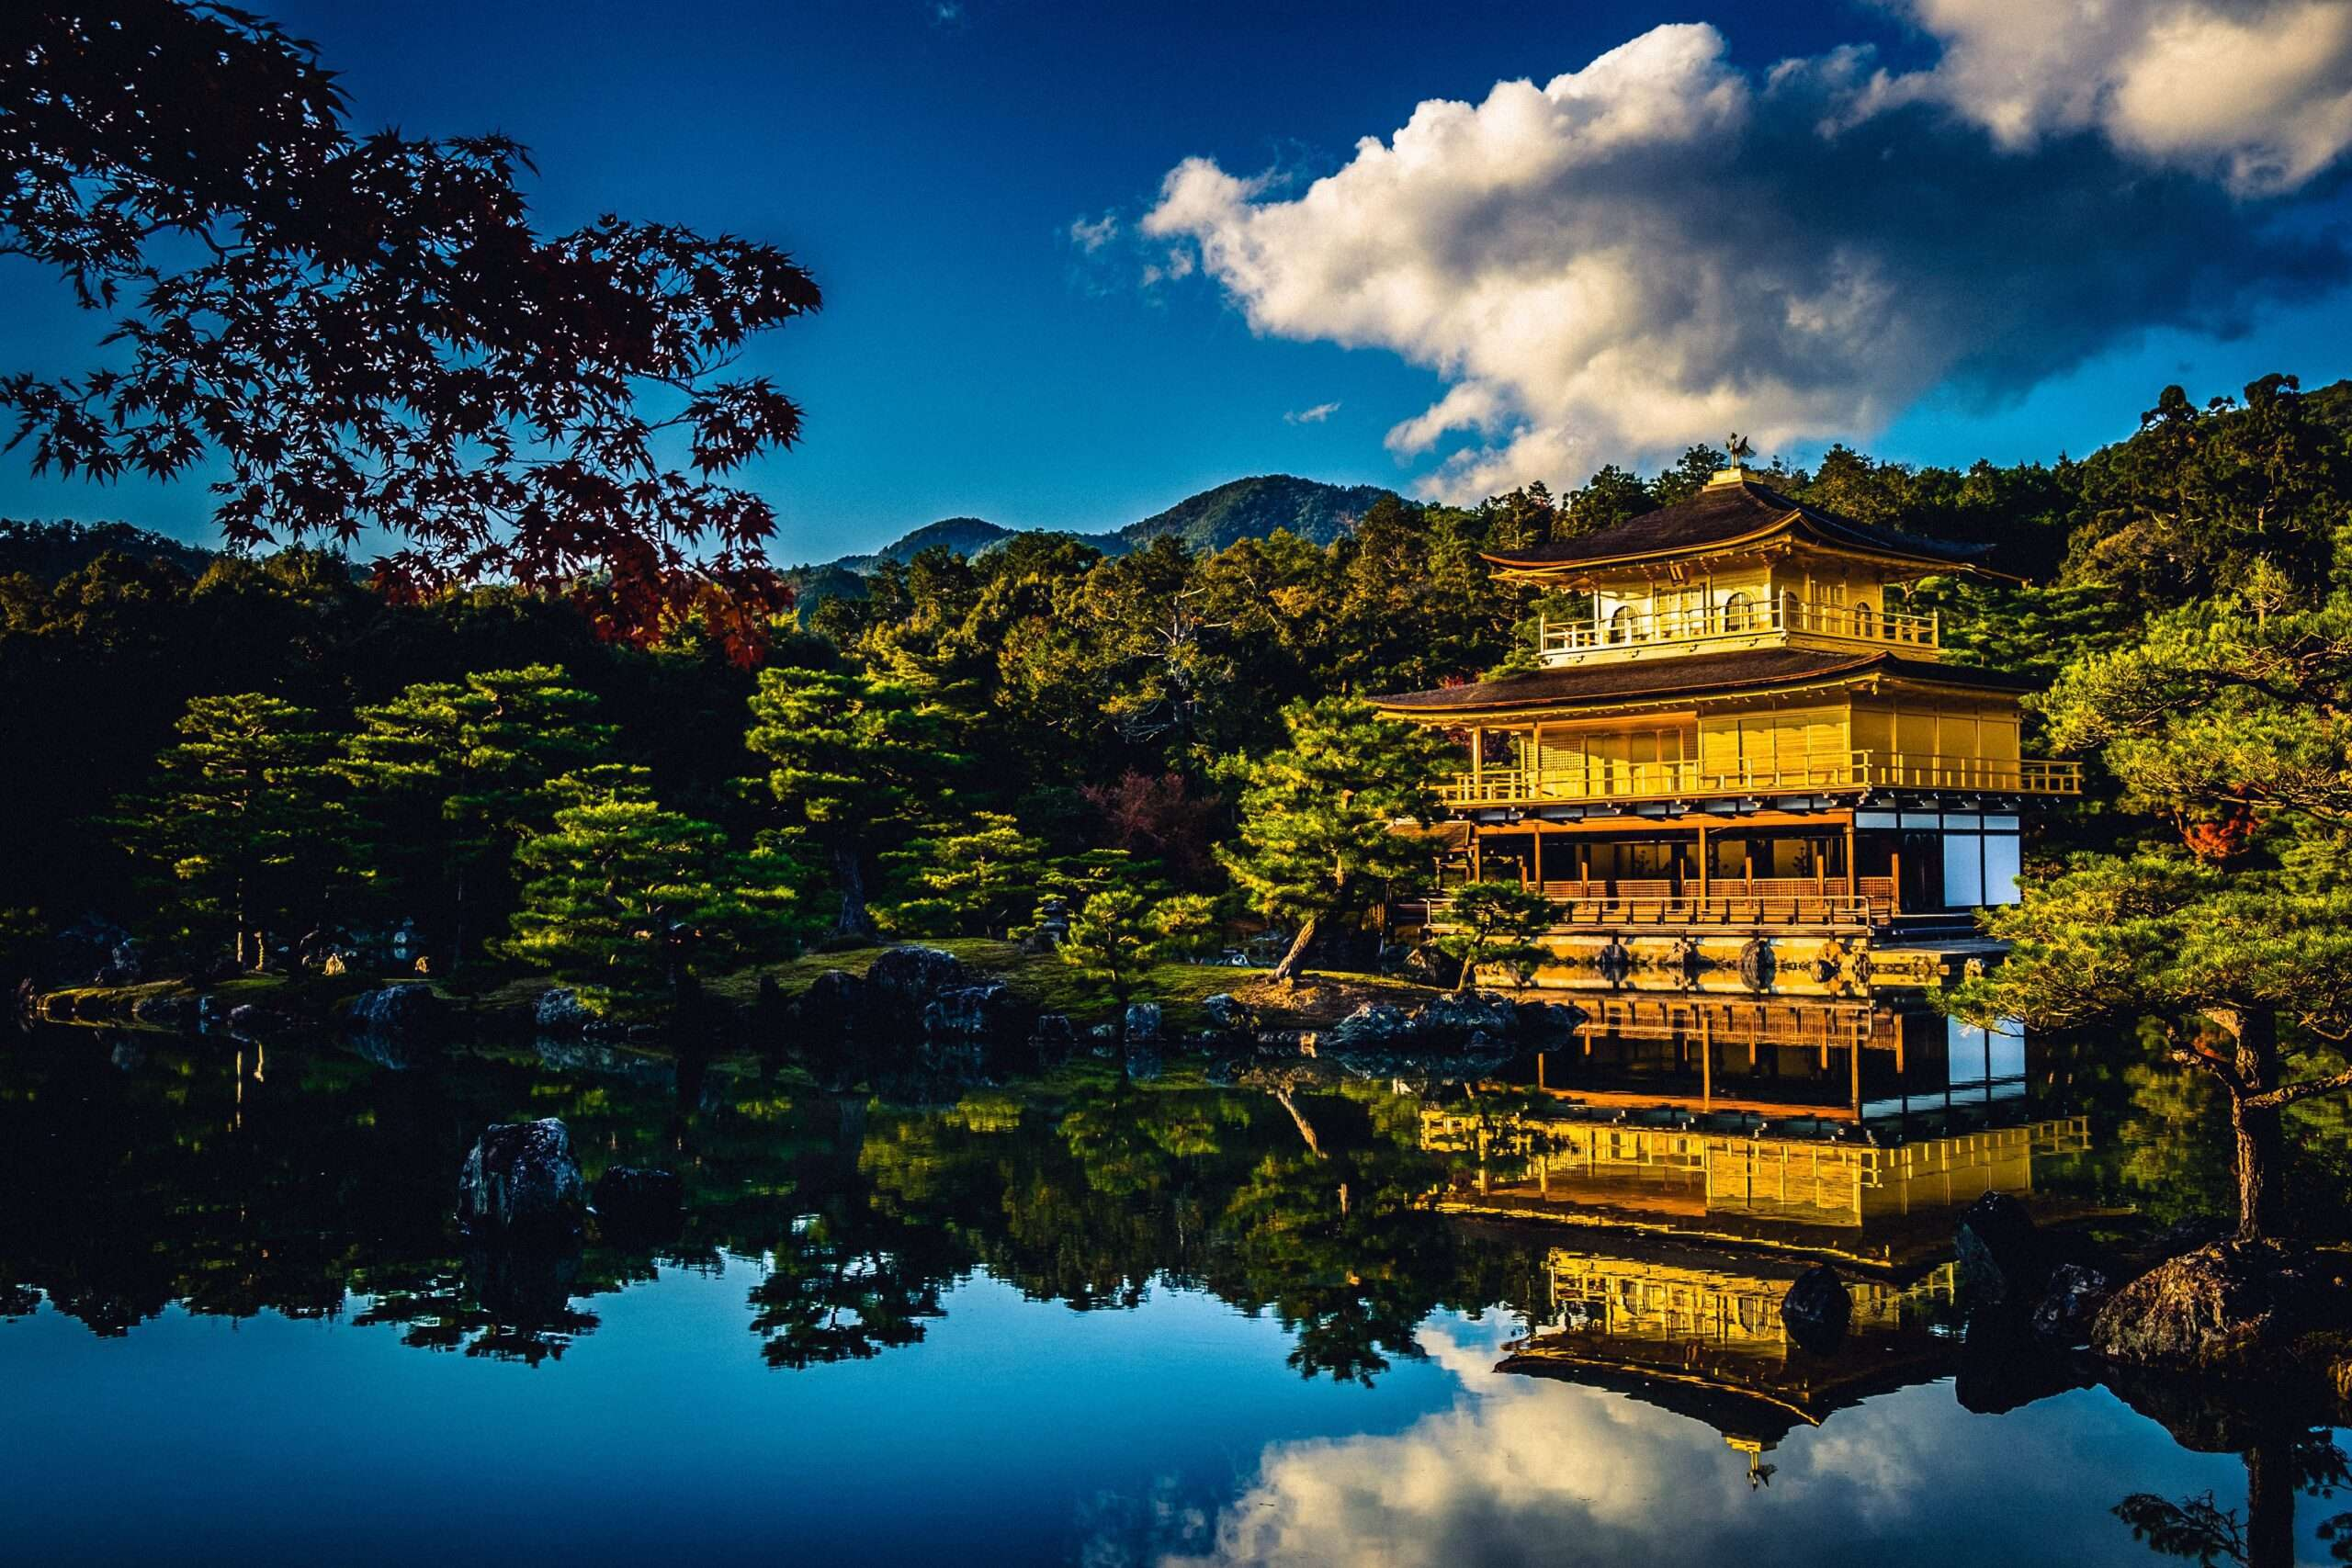 Kinkakuji, the golden pavillion reflecting in the pond in Kyoto, Japan